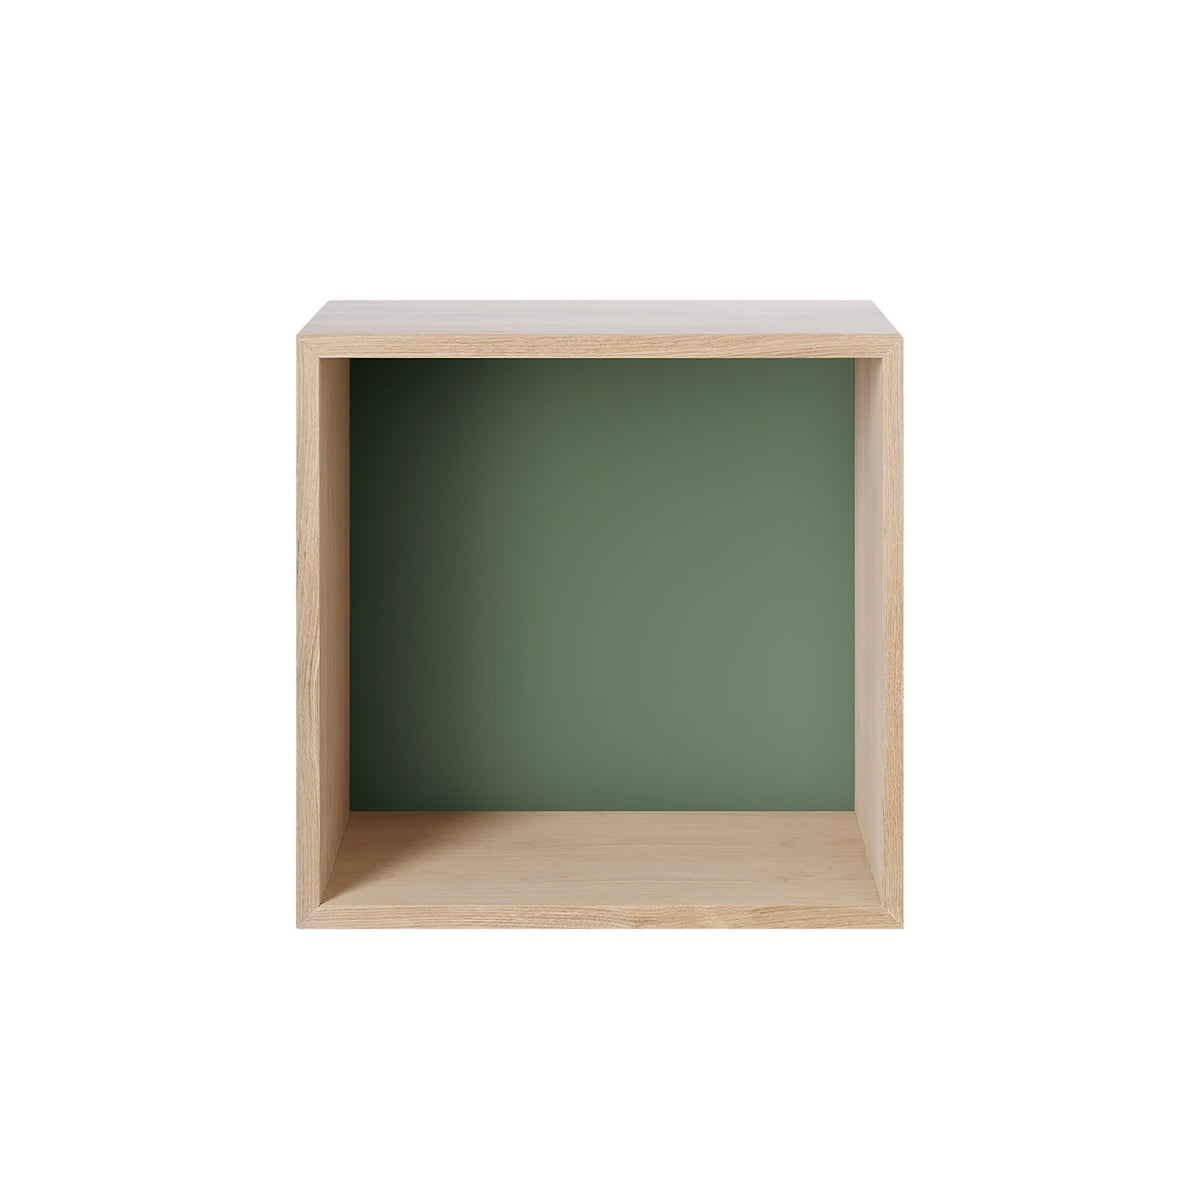 Muuto mini stacked regalmodul 2 0 medium eiche rueckwand dusty green